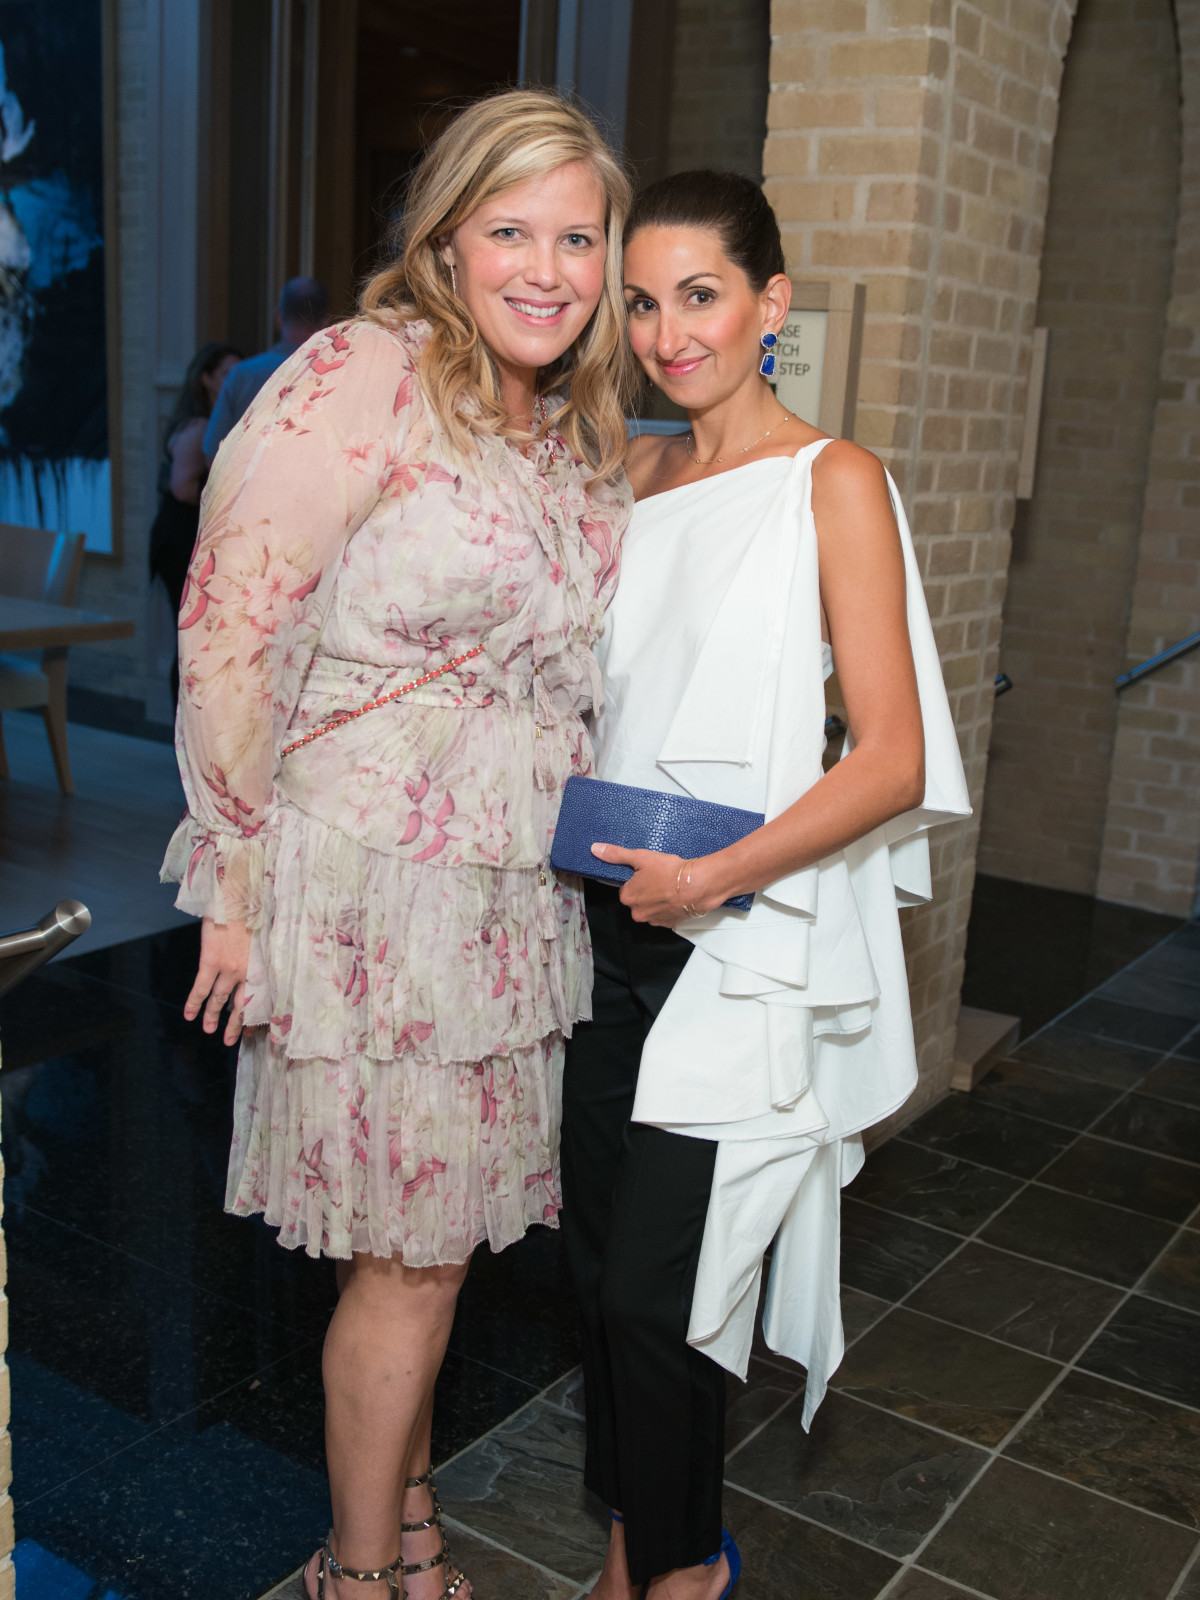 Melissa Sugulas, Jennifer Swallen at Recipe for Success party